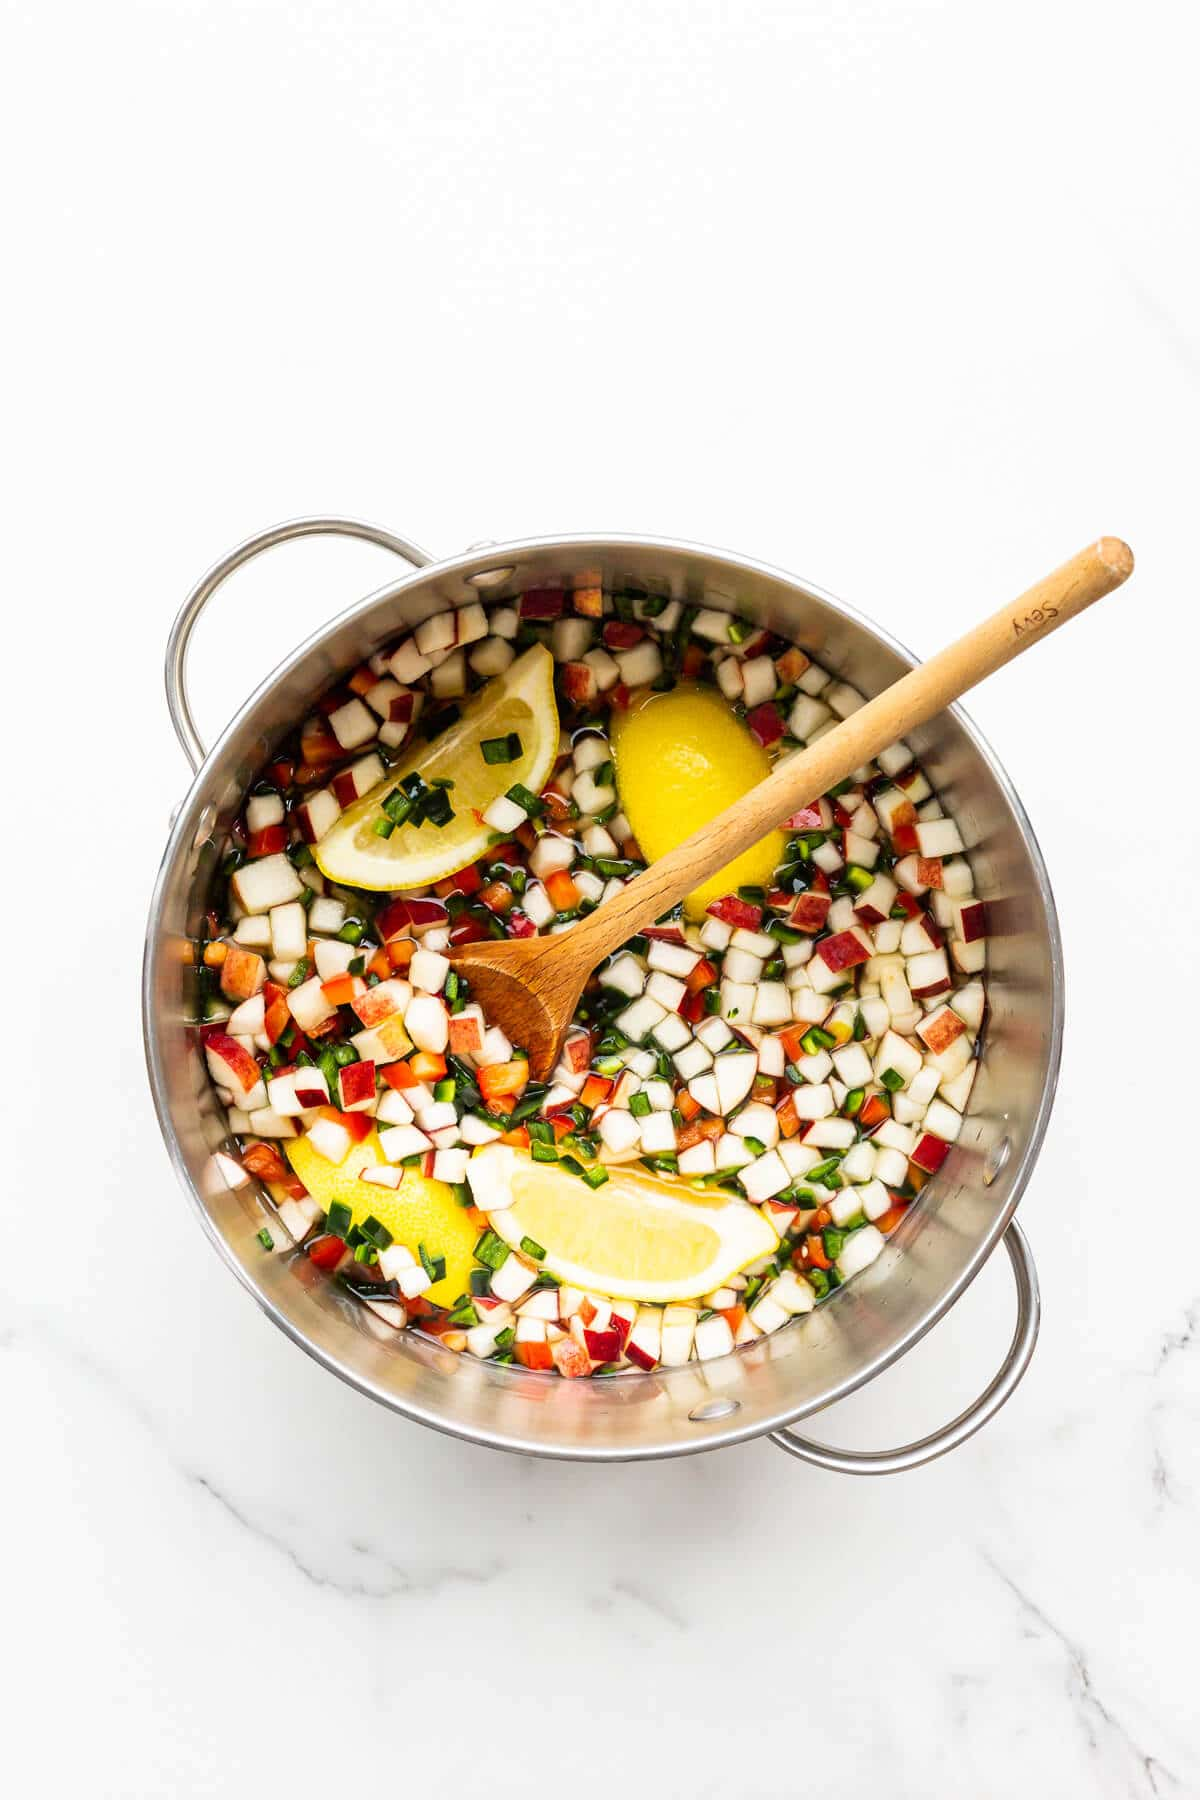 Ingredients for jalapeño jam combined in a big pot and ready to be cooked down on the stove.